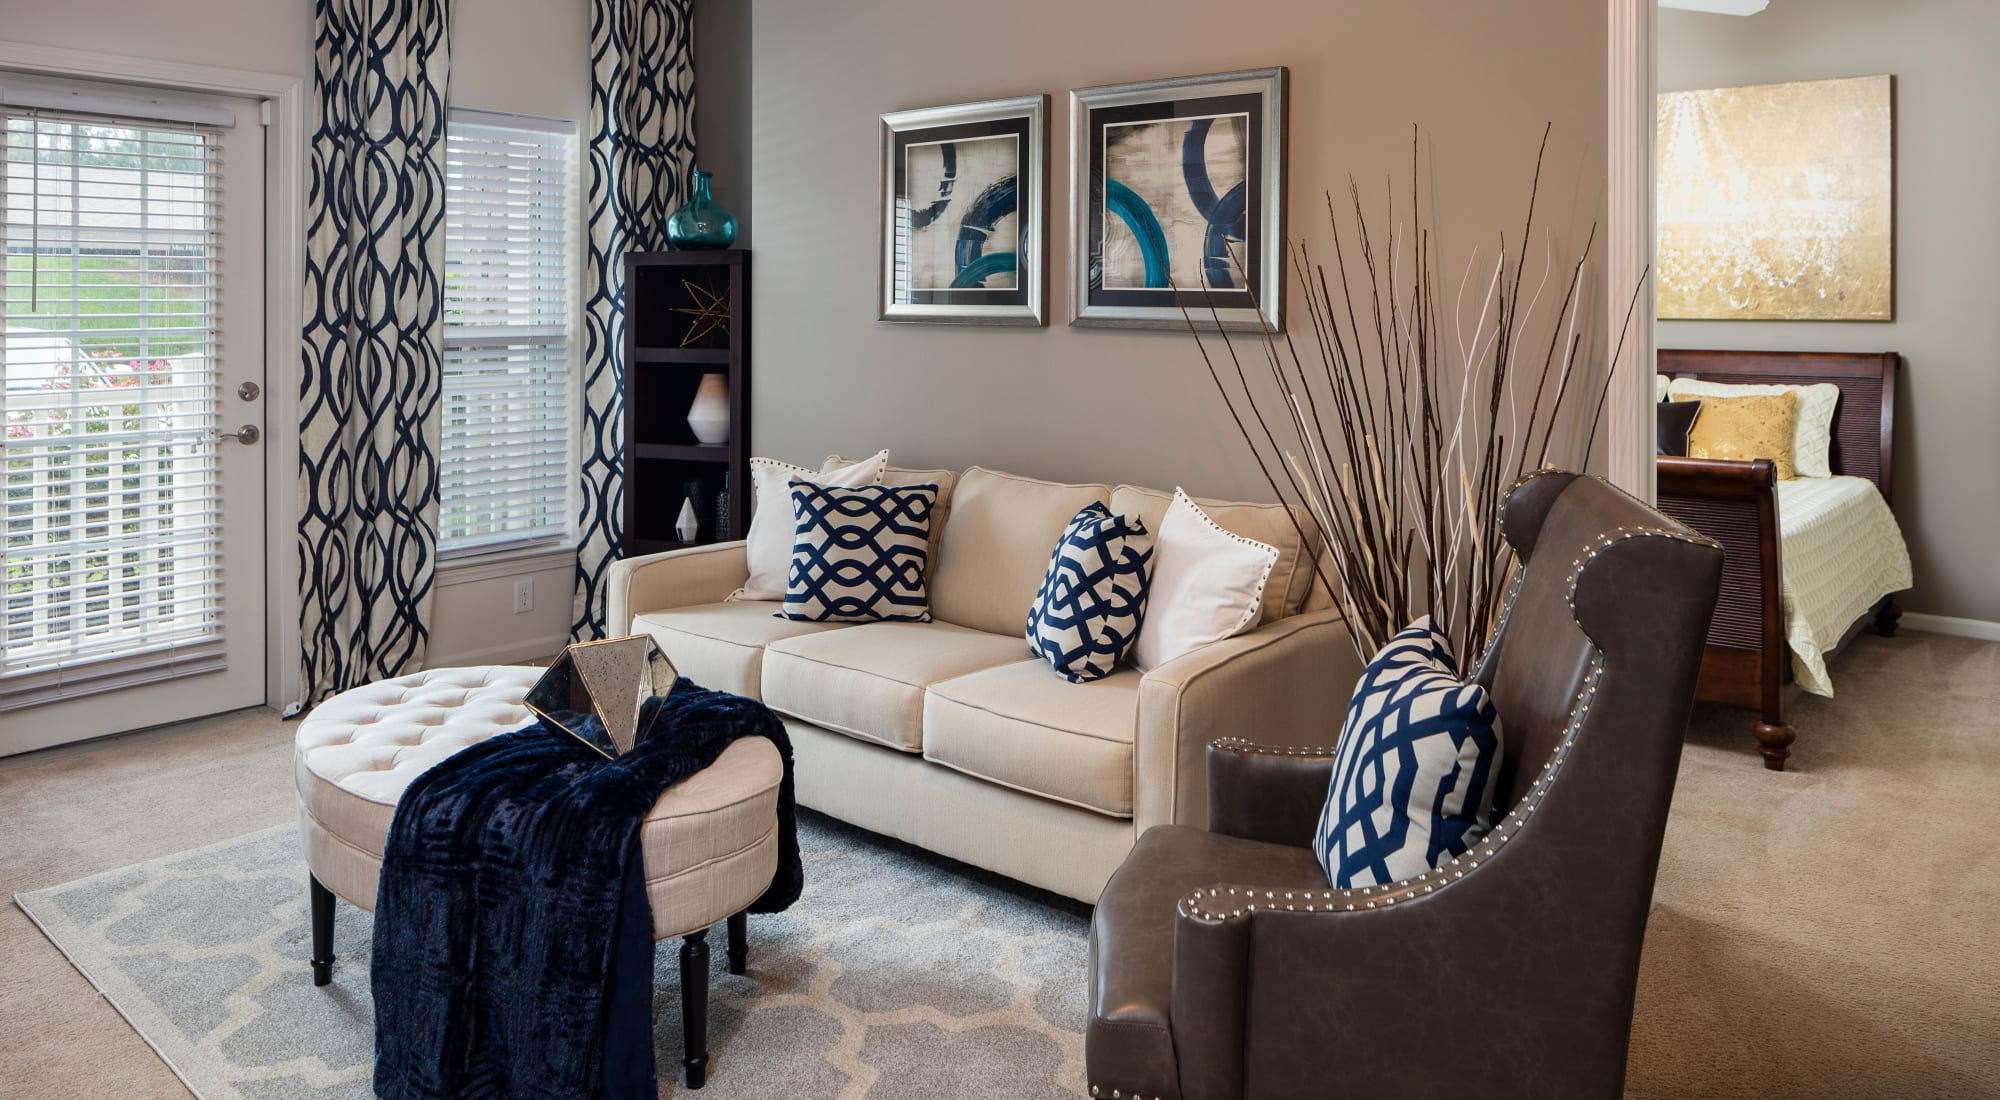 Schedule your tour of The Fairways Apartment Homes in Lee's Summit, Missouri